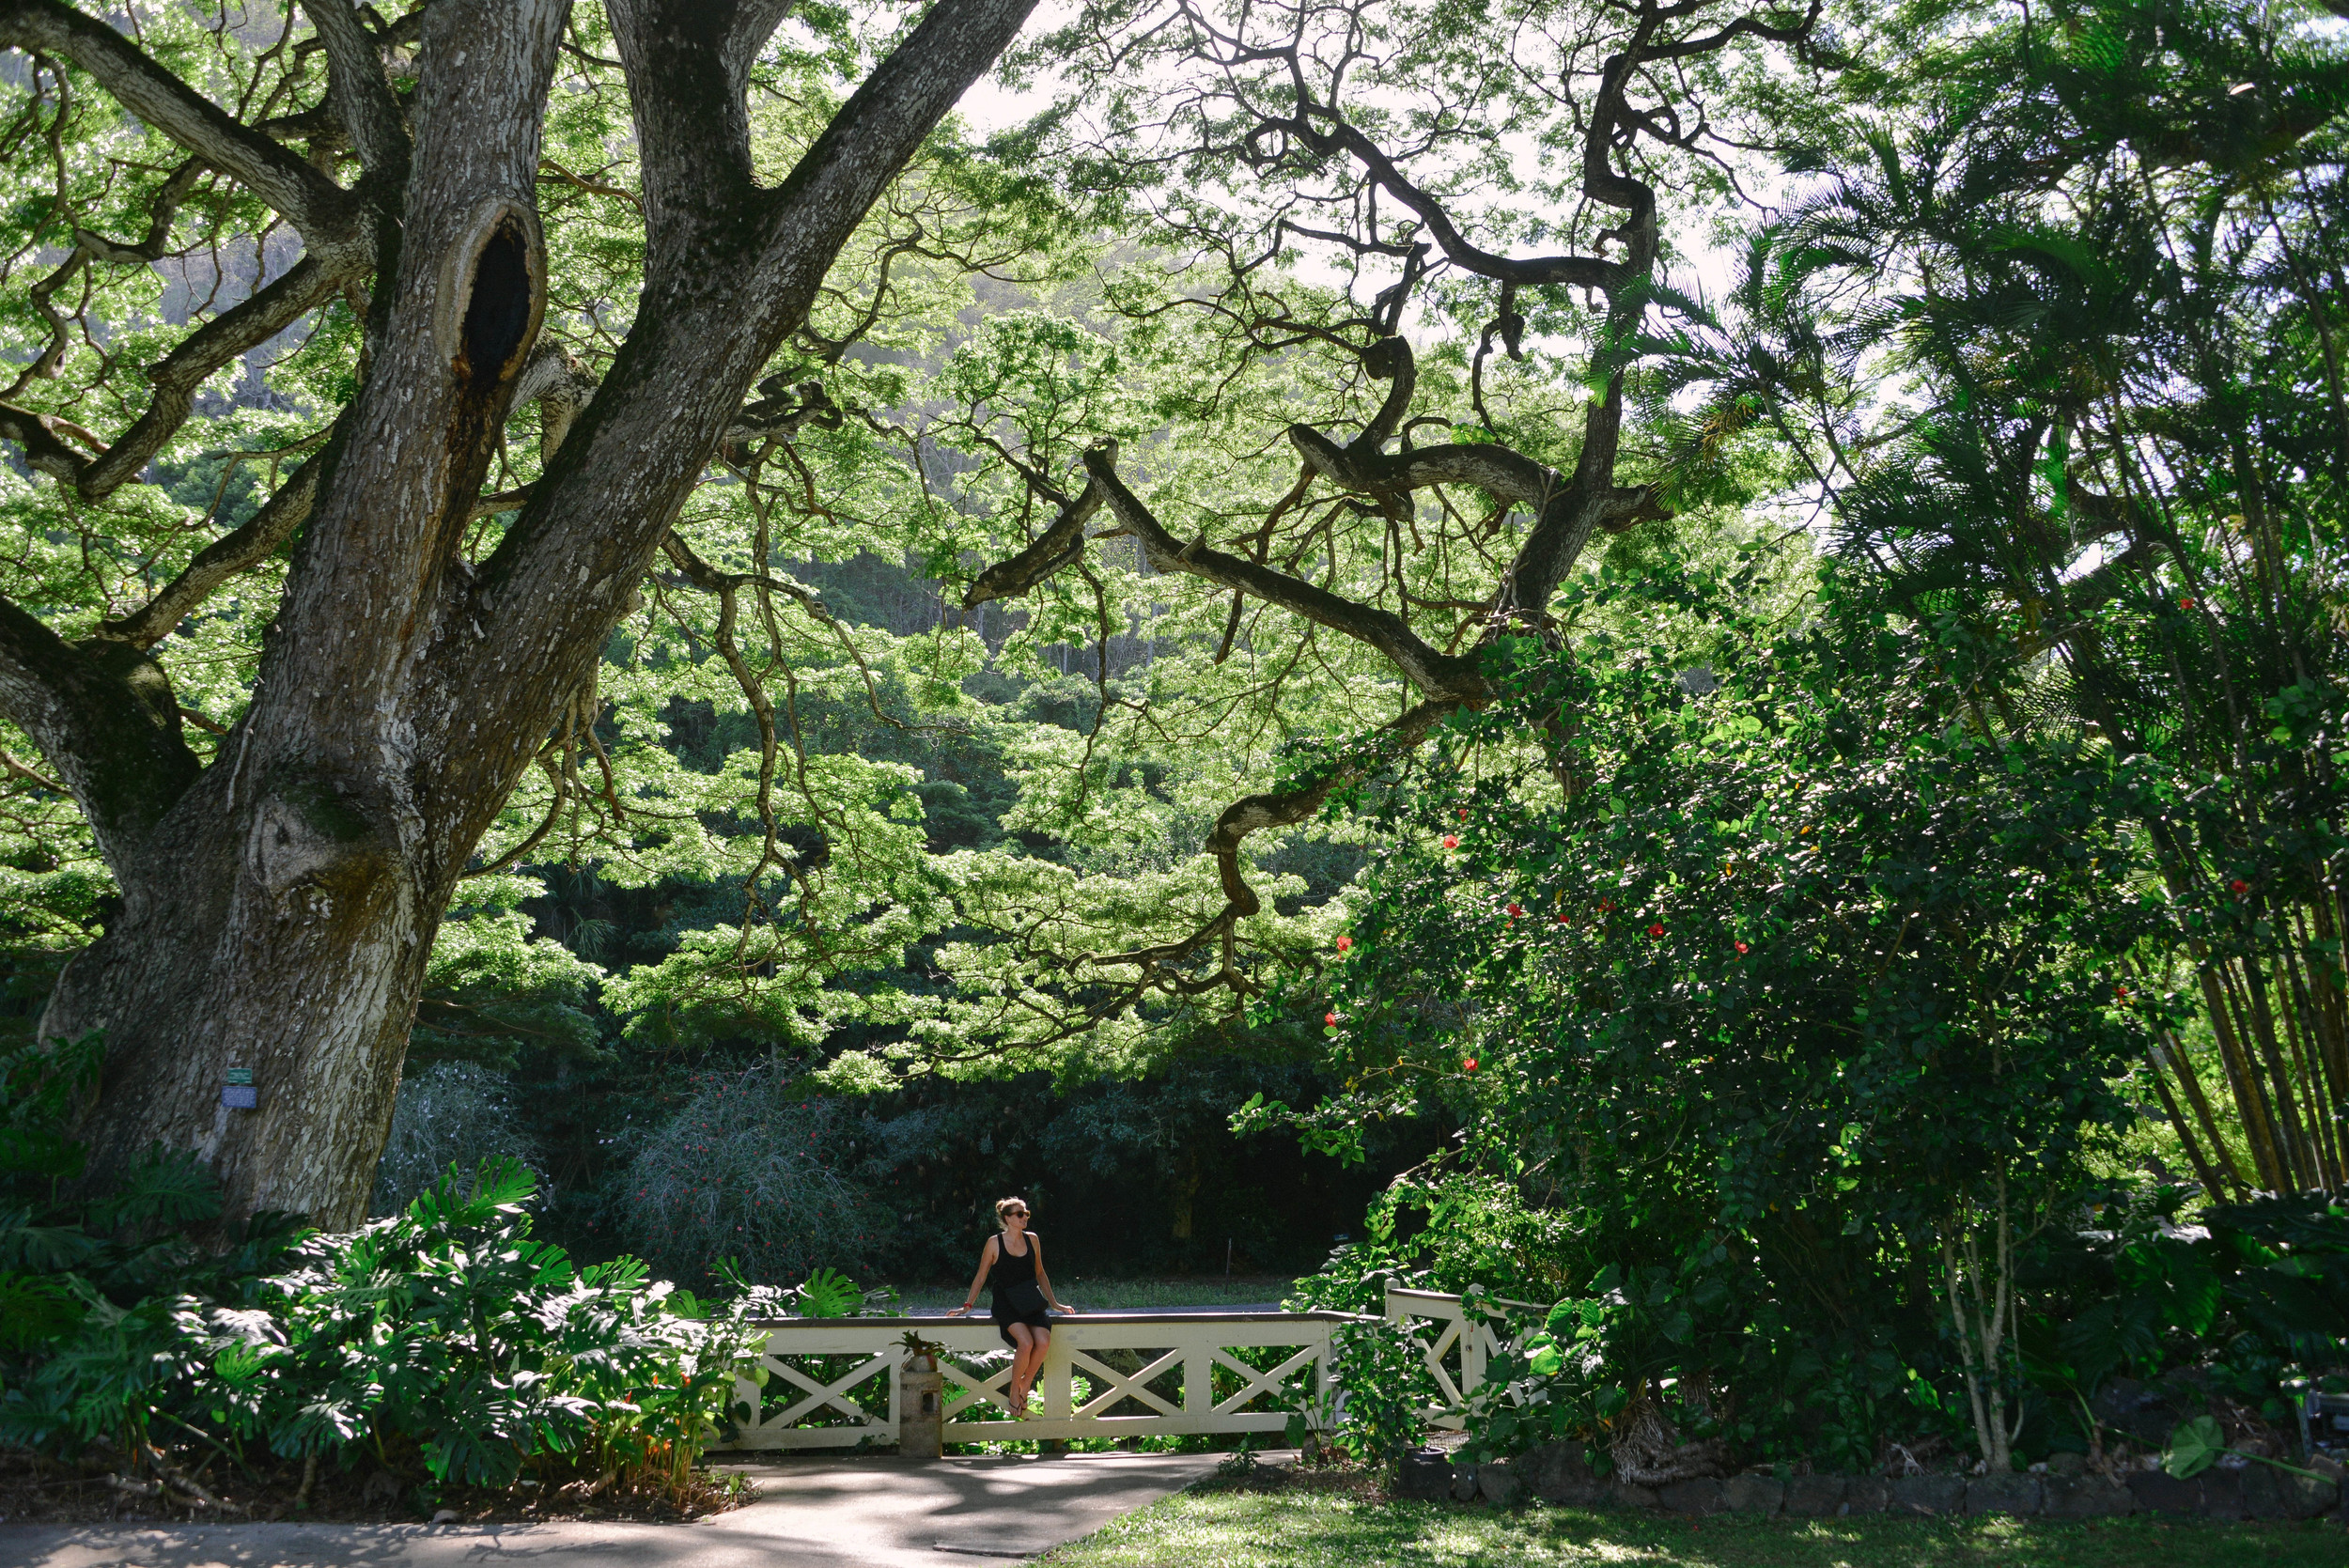 The beautiful gardens in Waimea Valley, Oahu.